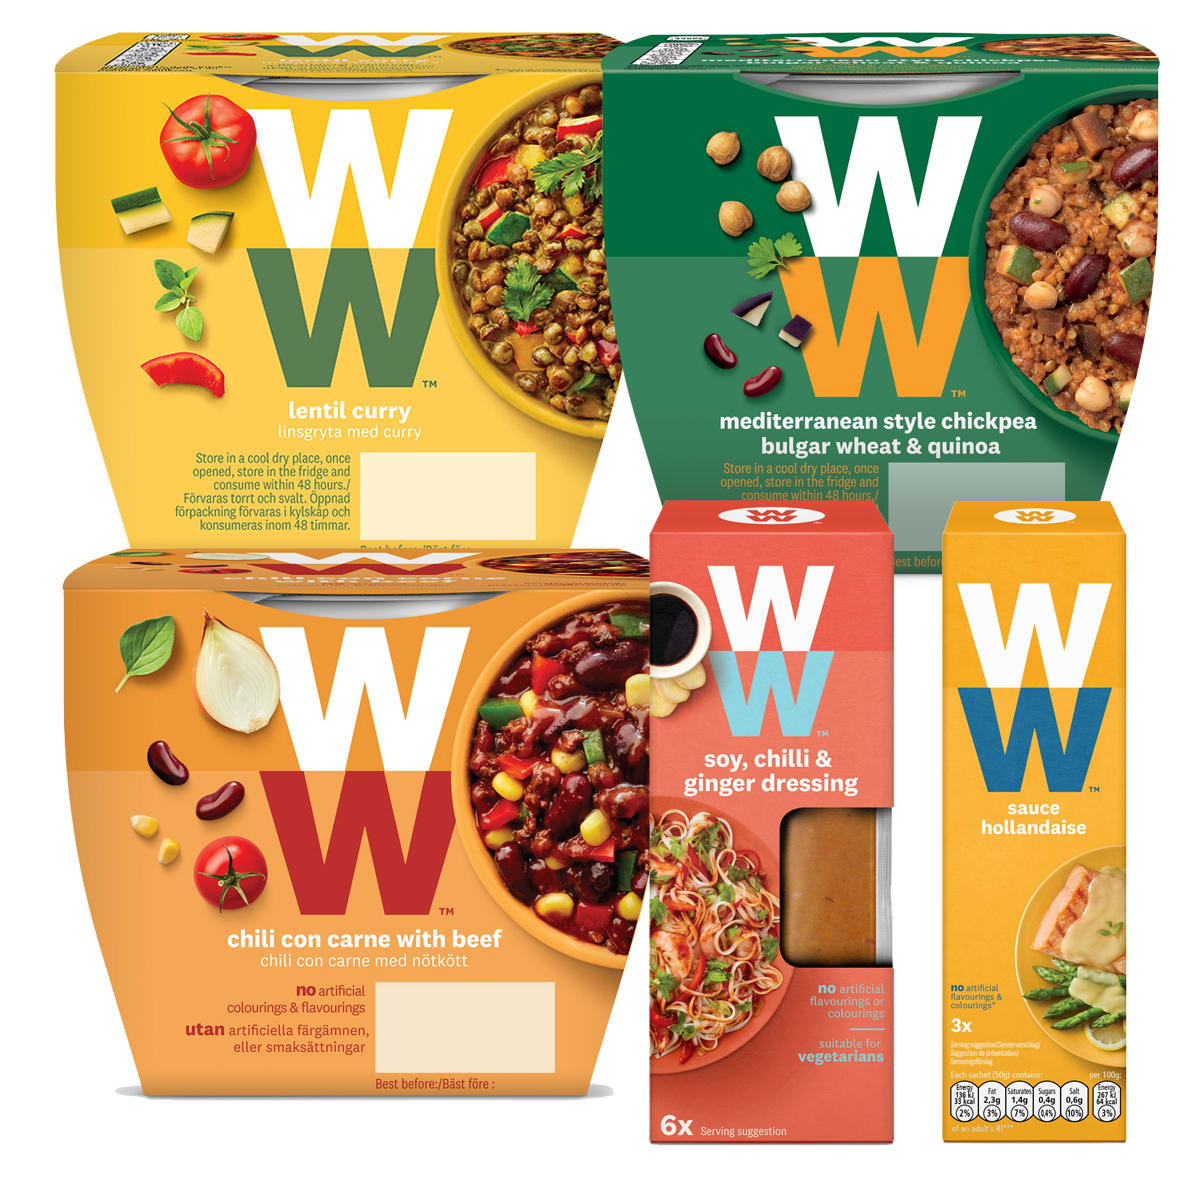 WW Meal Solutions Value Bundle, Mediterranean Style Chickpea Bulgur Wheat and Quinoa, Chilli Con Carne with Beef, Lentil Curry, Hollandaise Sauce, Soy, Chilli and Ginger Dressing